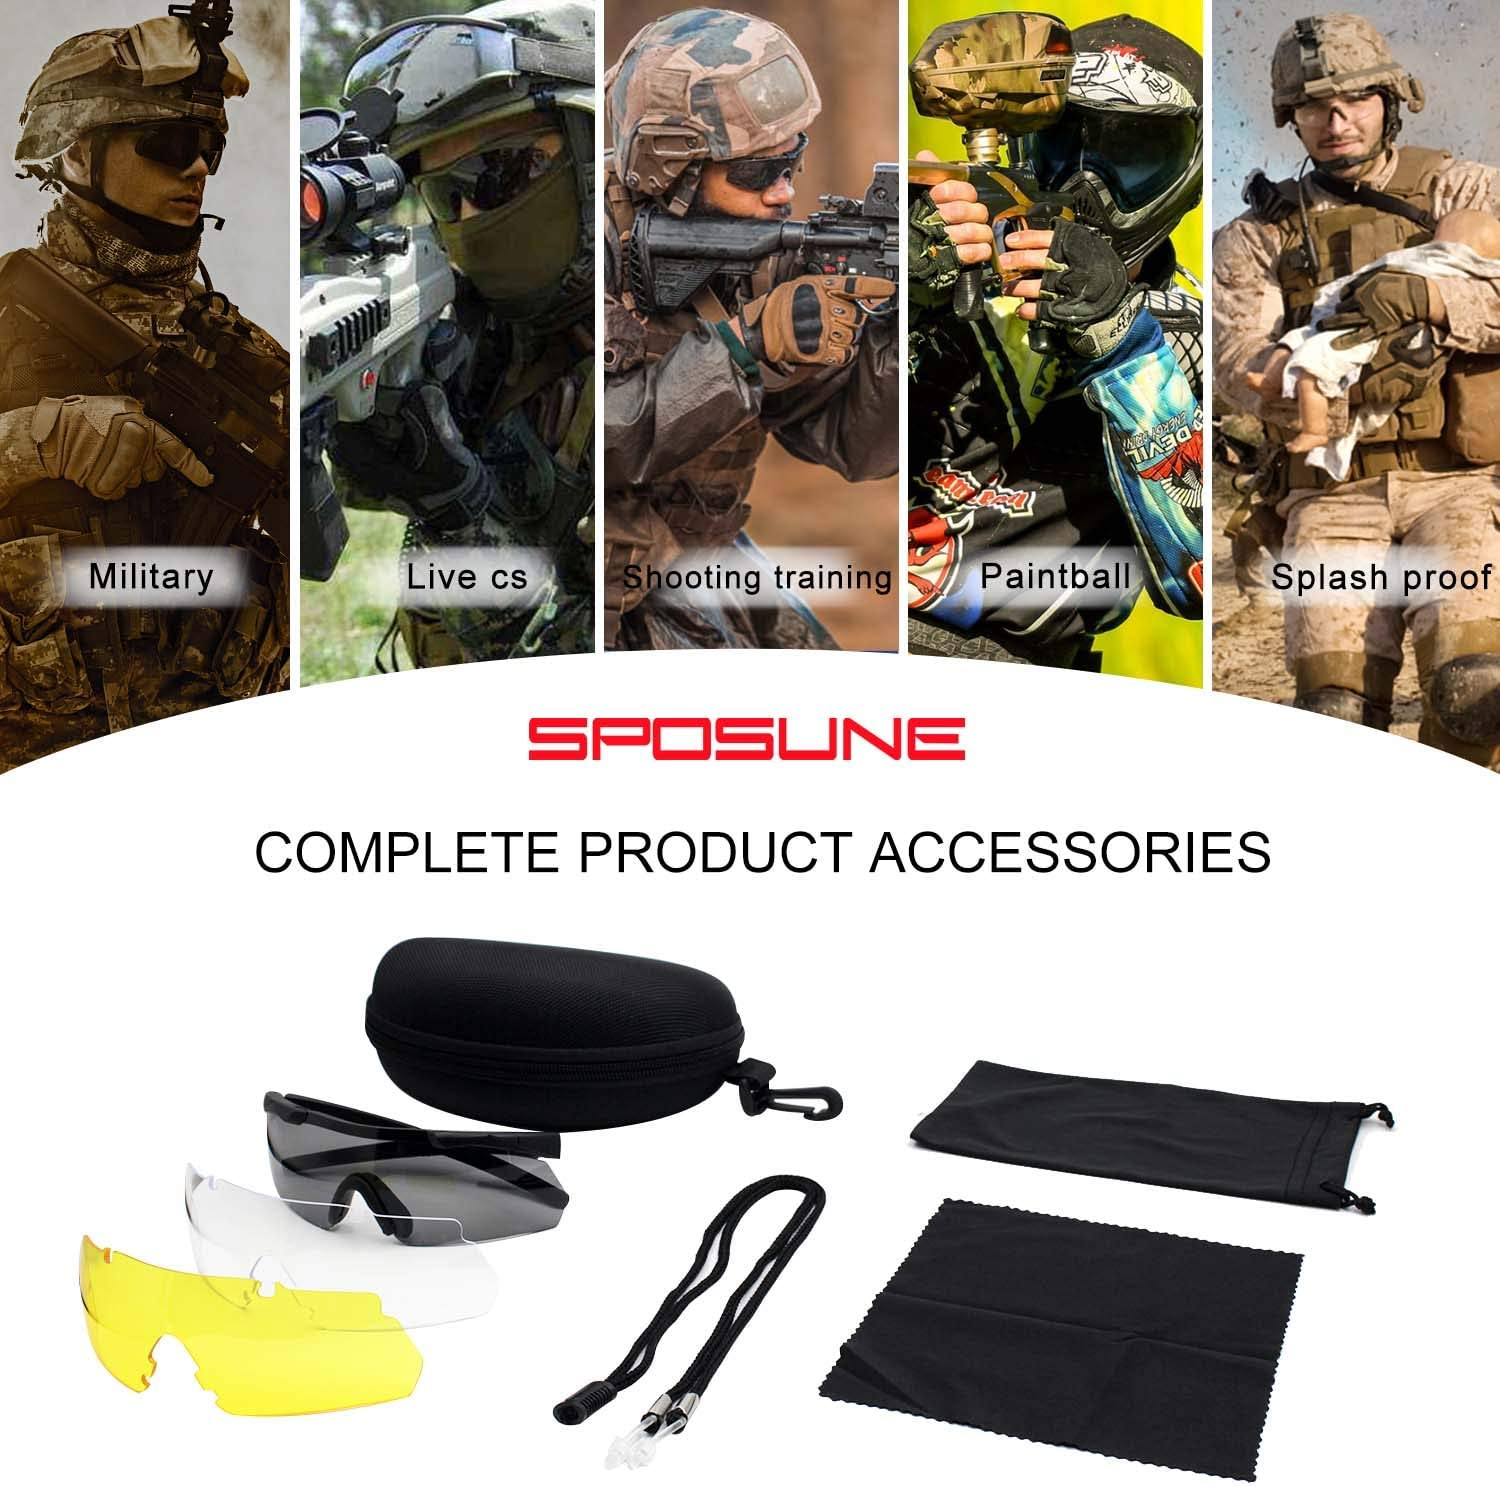 Outdoor Tactical Glasses with 3 Interchangeable Lenses, High Impact resistance Shooting Glasses, Unisex Safety Eyewear - Anti fog UV400 Eye Protection Sunglasses for Hunting Cycling Driving Compact : Sports & Outdoors